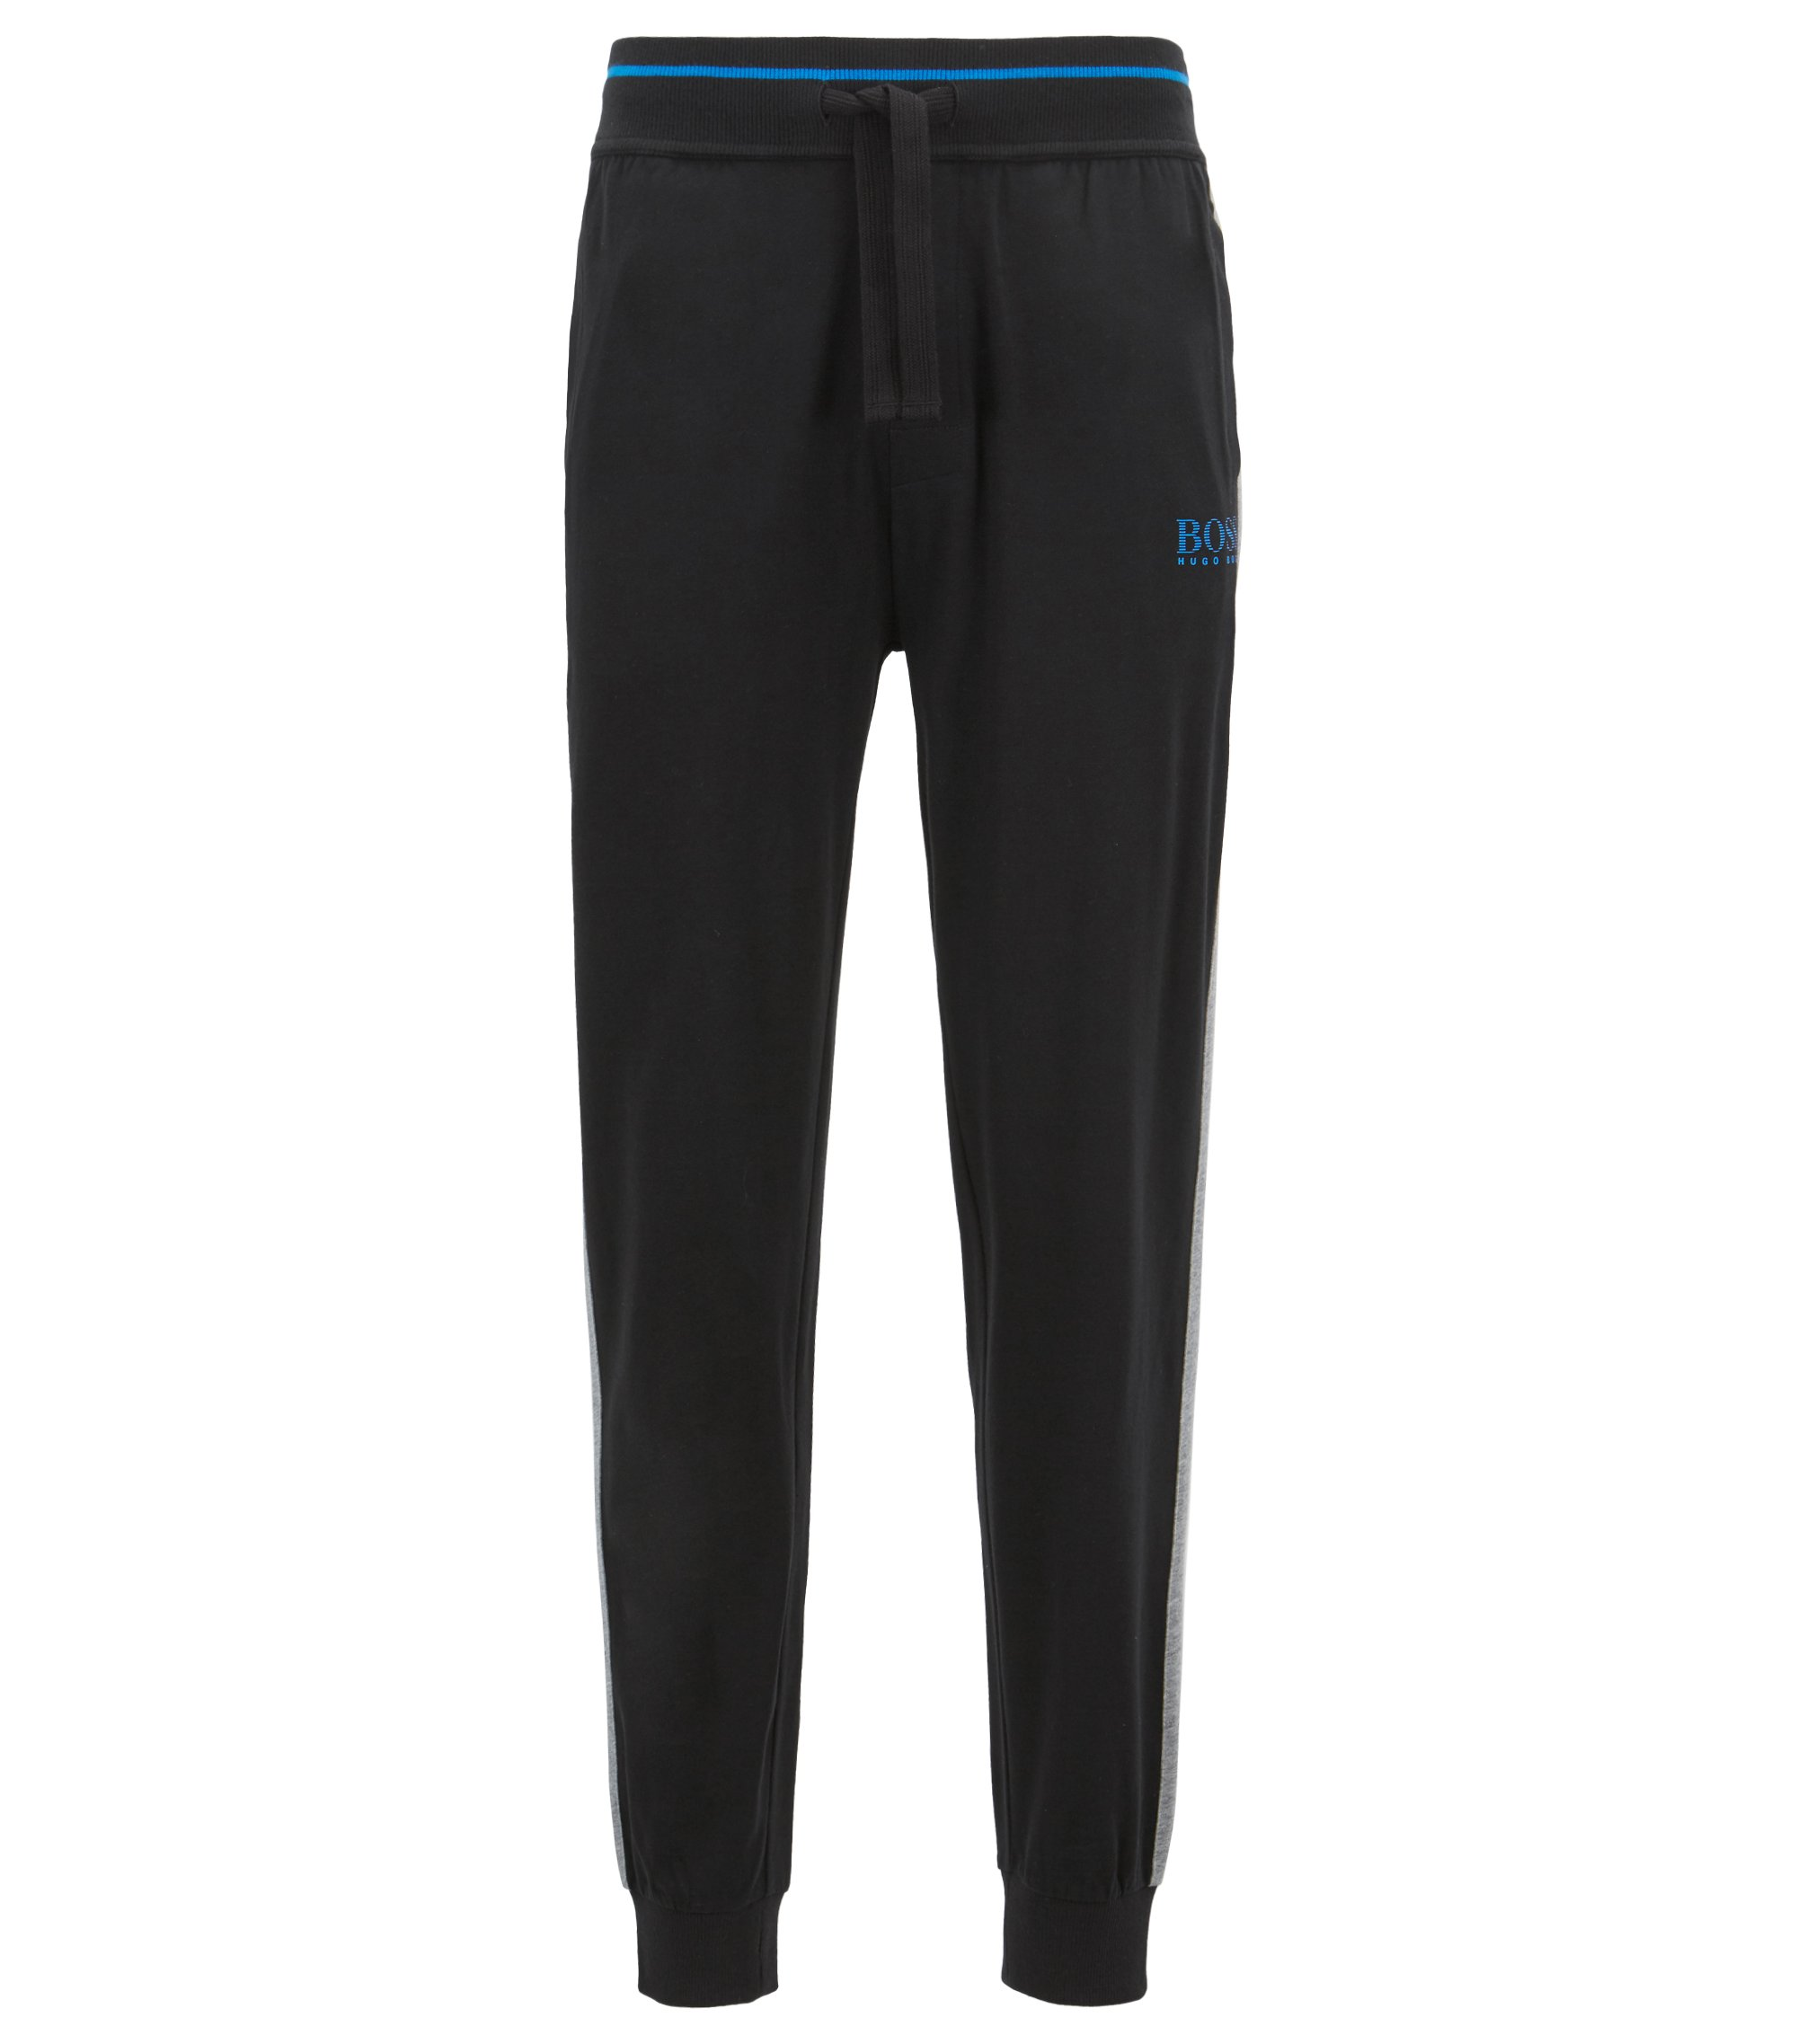 Loungewear trousers in pure cotton with contrast stripe detail, Black